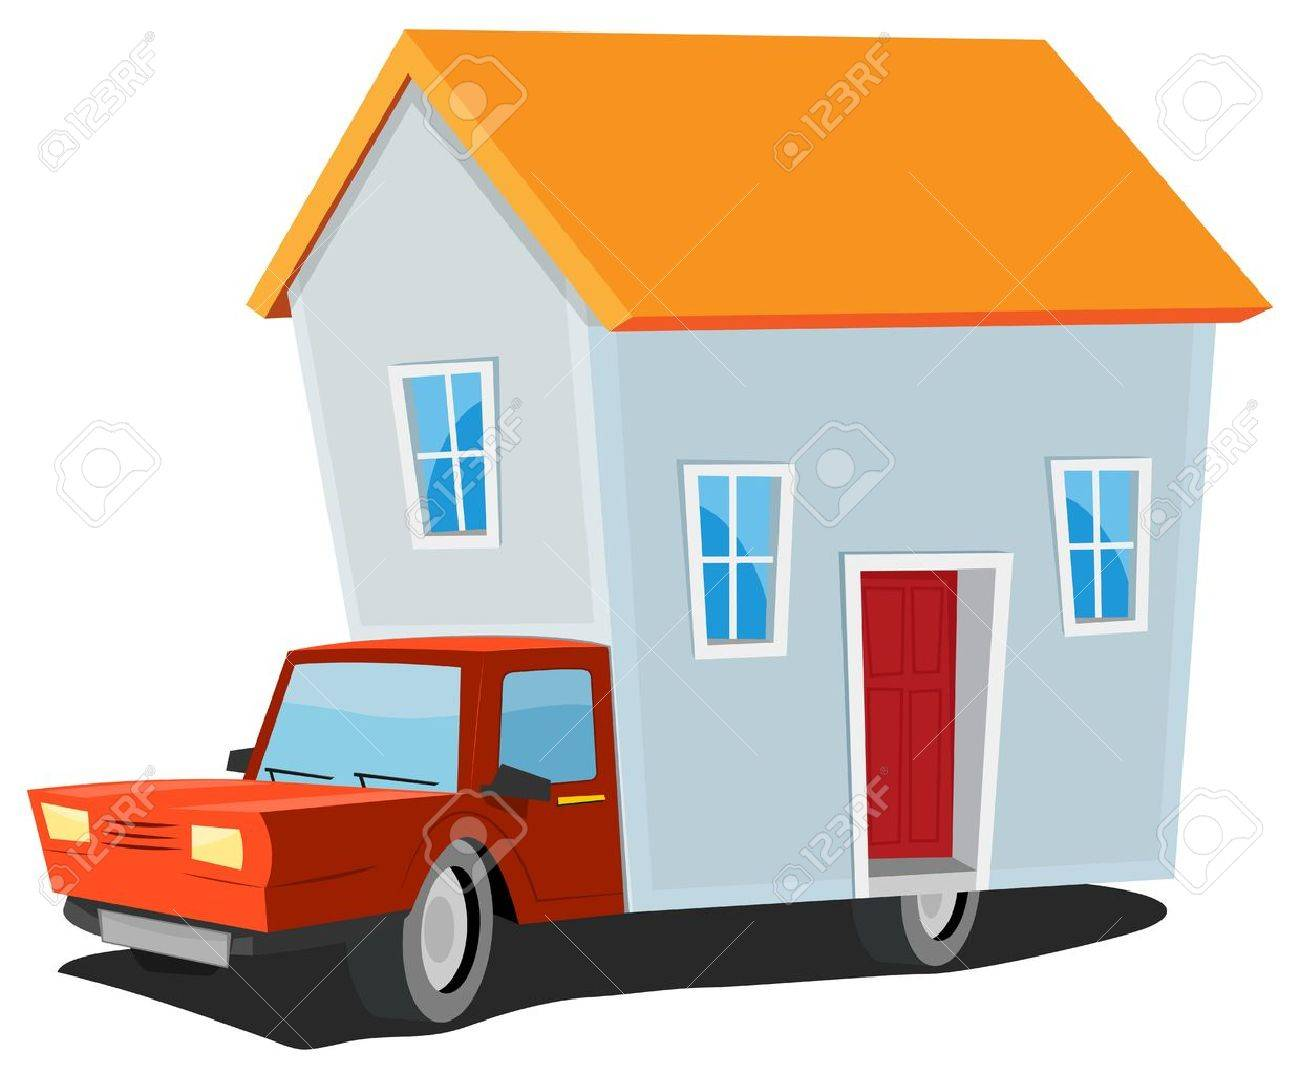 Cartoon Mobile Home For Sale By Owner on heavy equipment by owner, used mobile home sale owner, mobile home parks sale owner, apartments for rent by owner, mobile homes for rent,